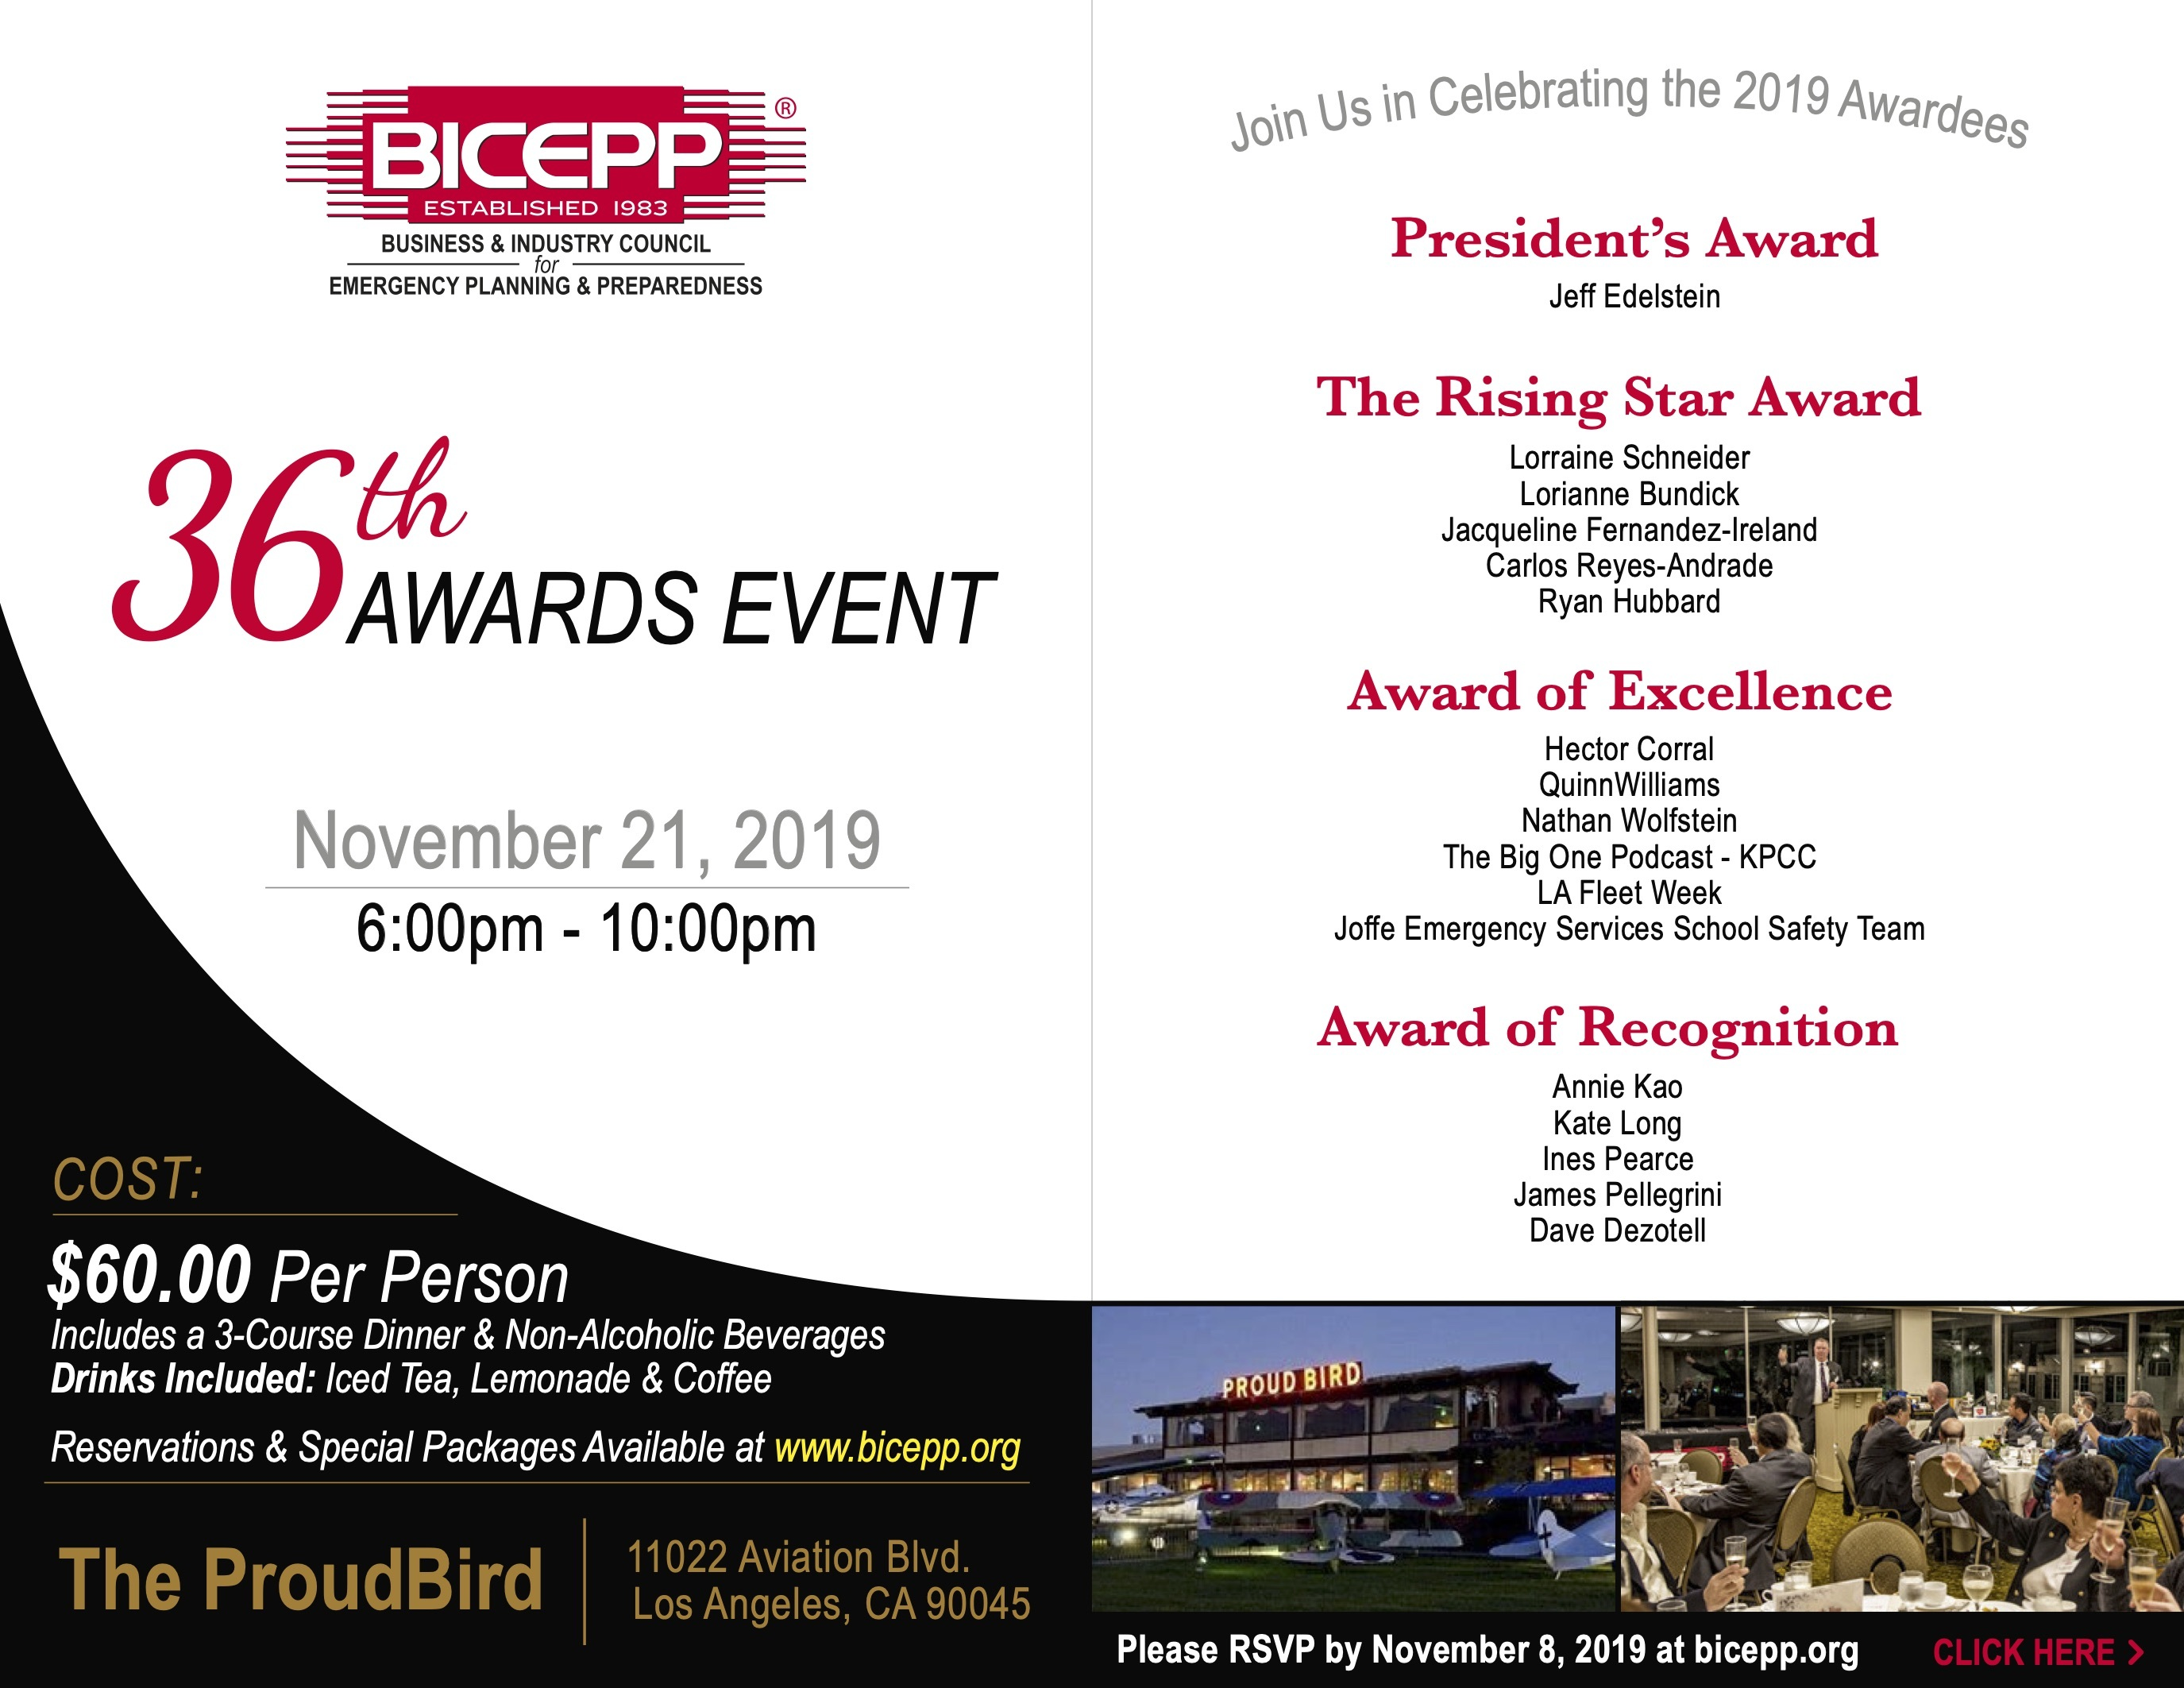 2019 Annual Awards Dinner Invitation